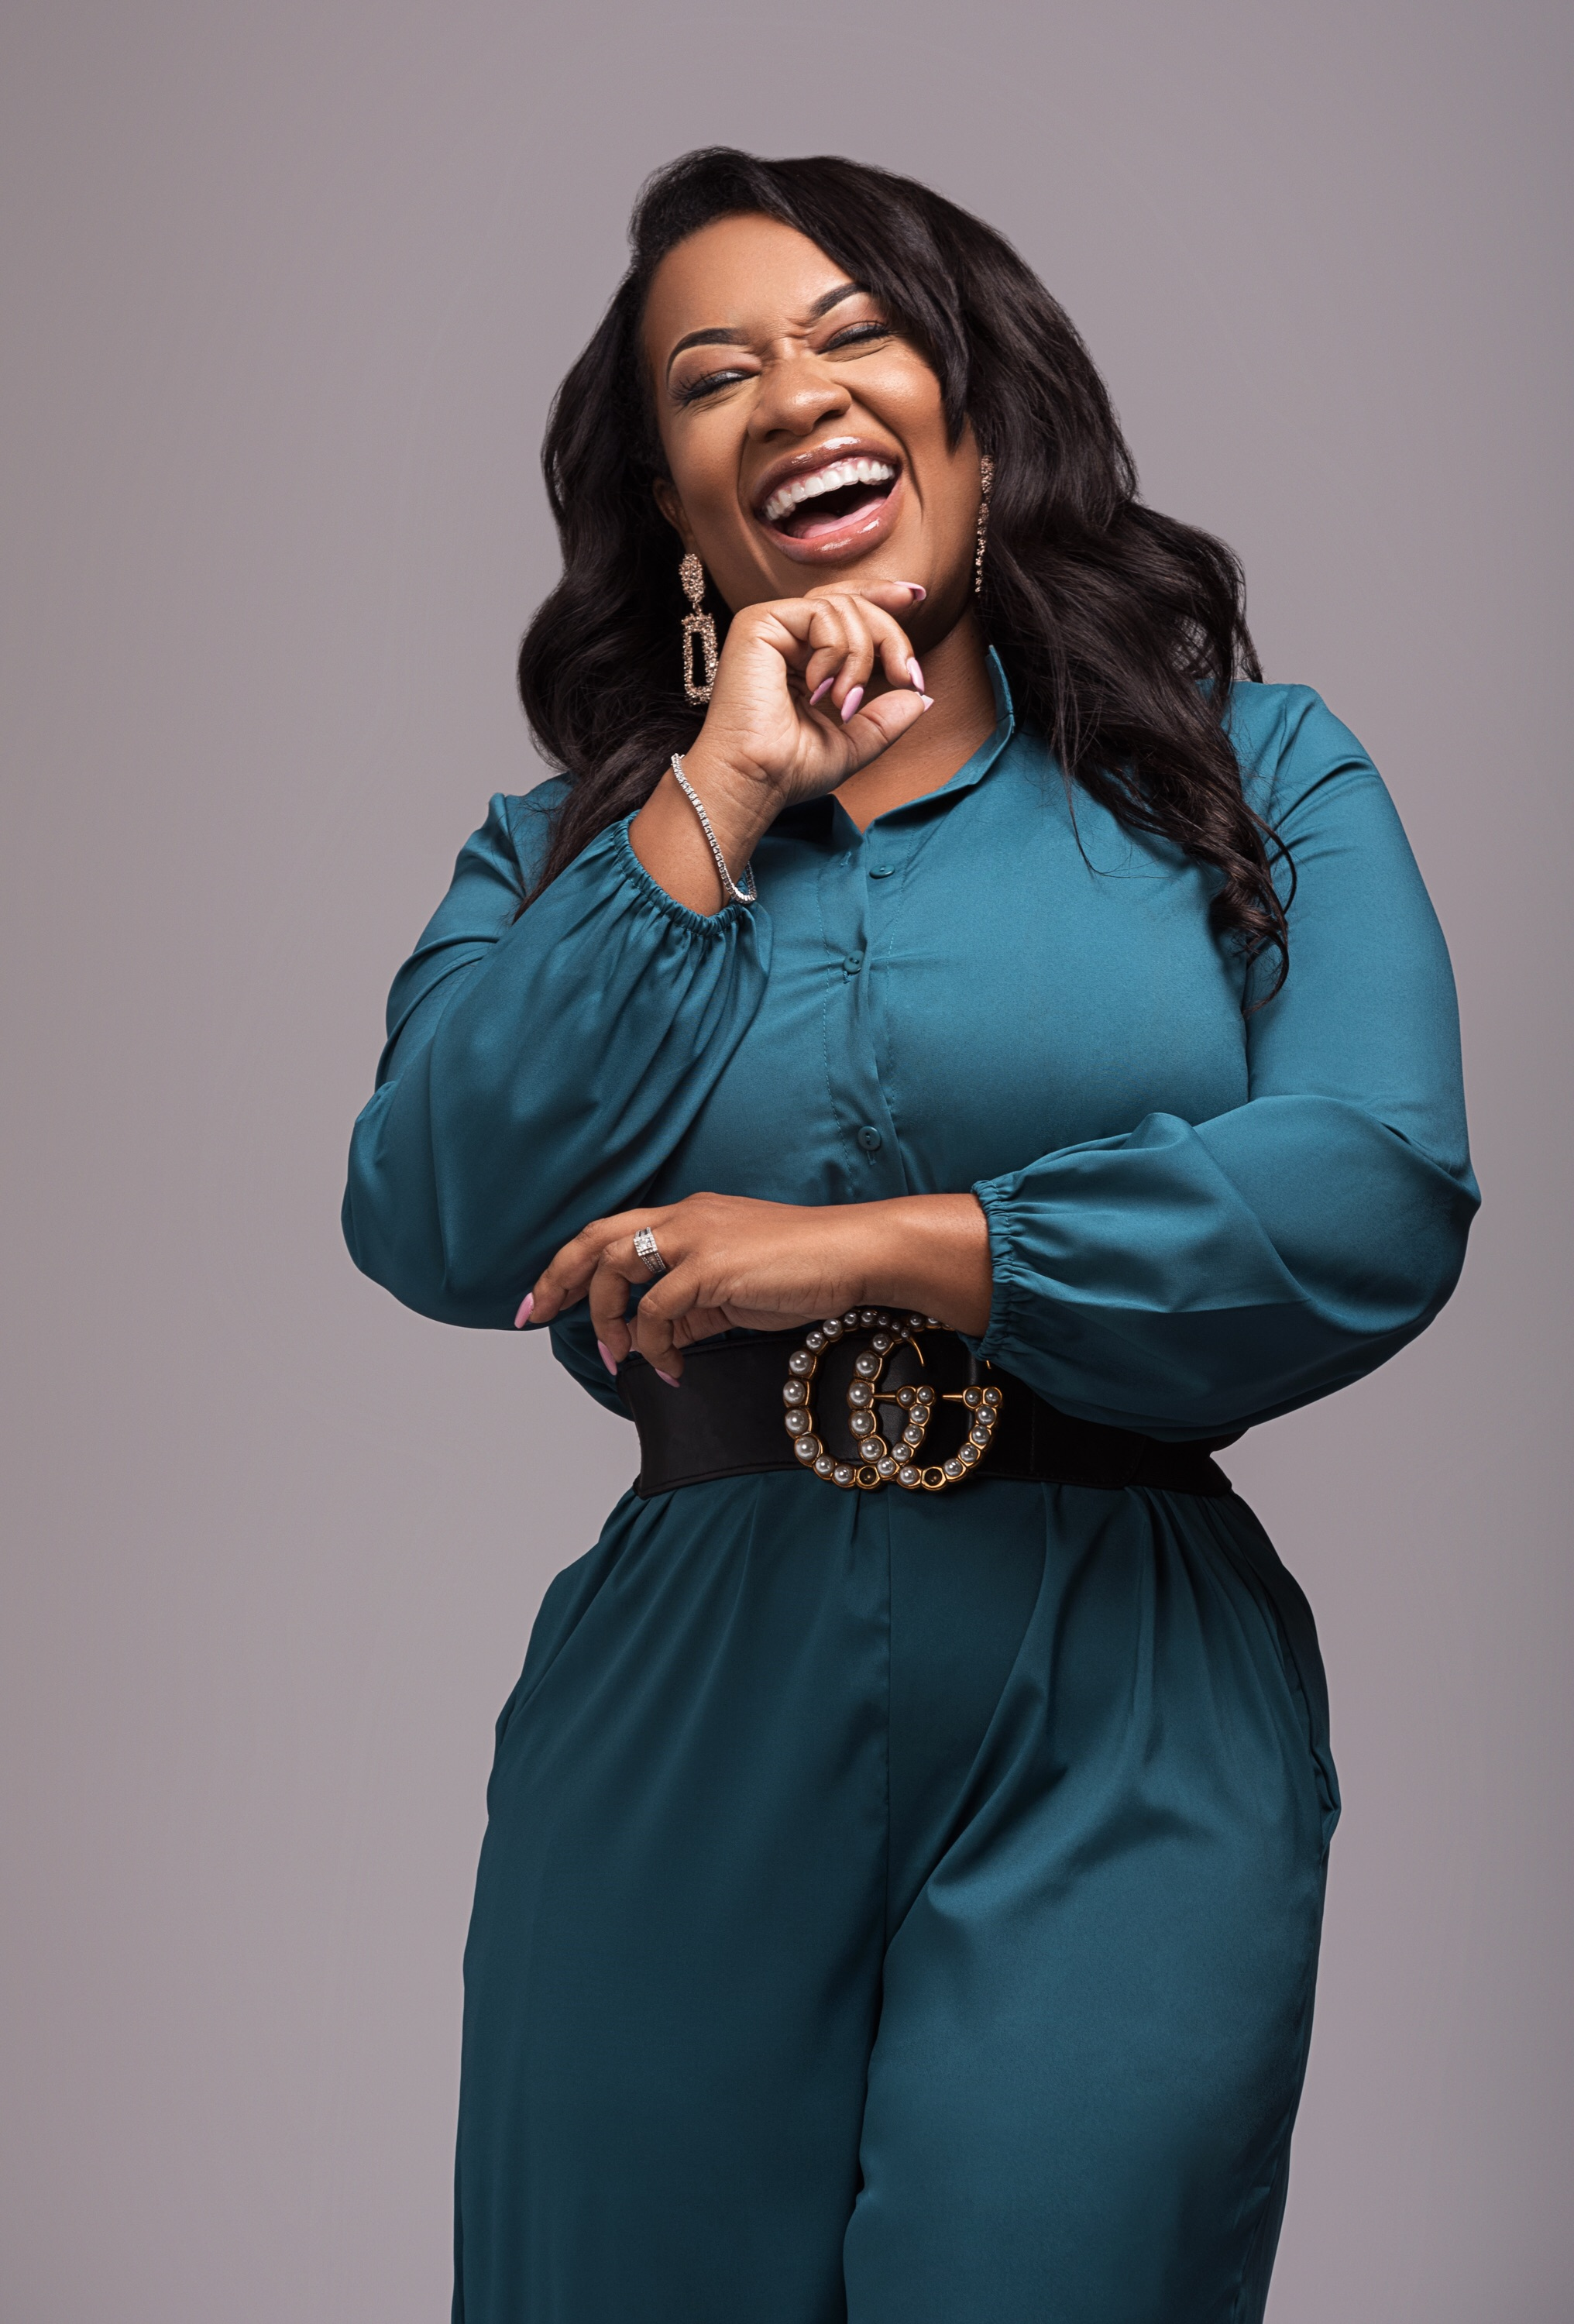 Dr. Ashanti Odom-Pitts continues her drive to empower single moms to greatness with her coaching programs